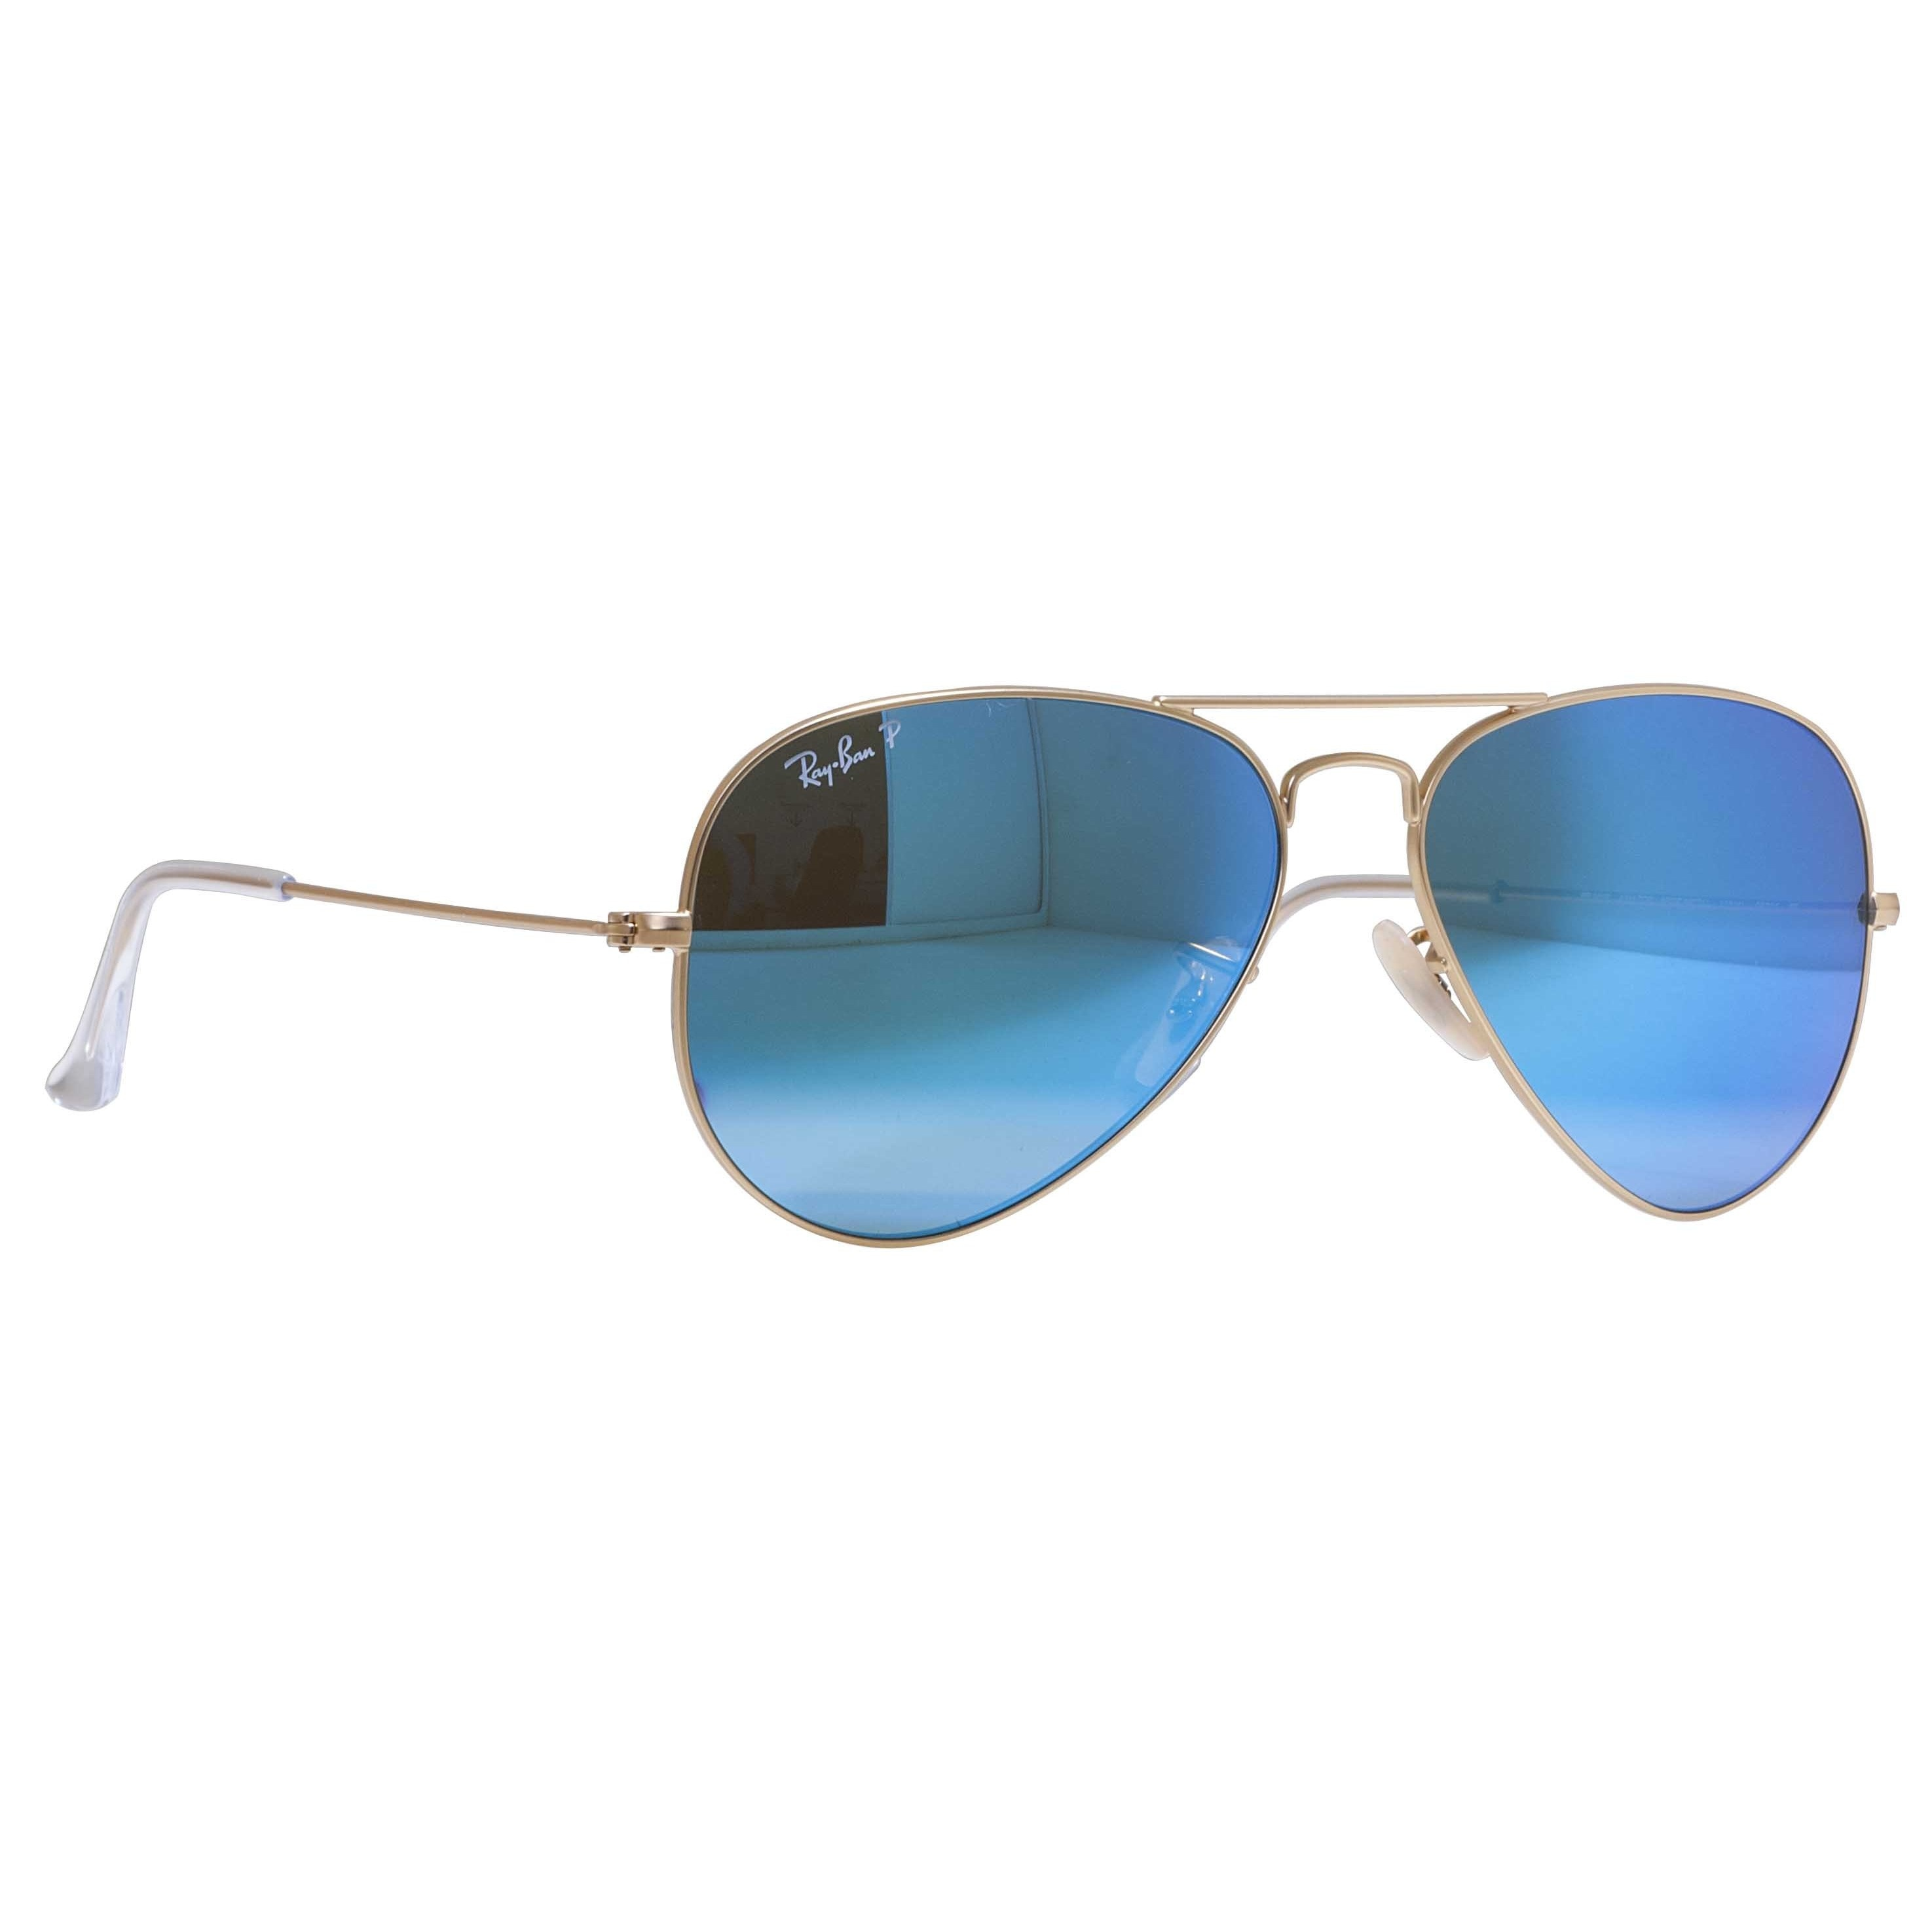 2edcc4593a Shop Ray-Ban Aviator RB3025 Unisex Gold Frame Blue Flash Polarized Lens  Sunglasses - Free Shipping Today - Overstock - 9394181